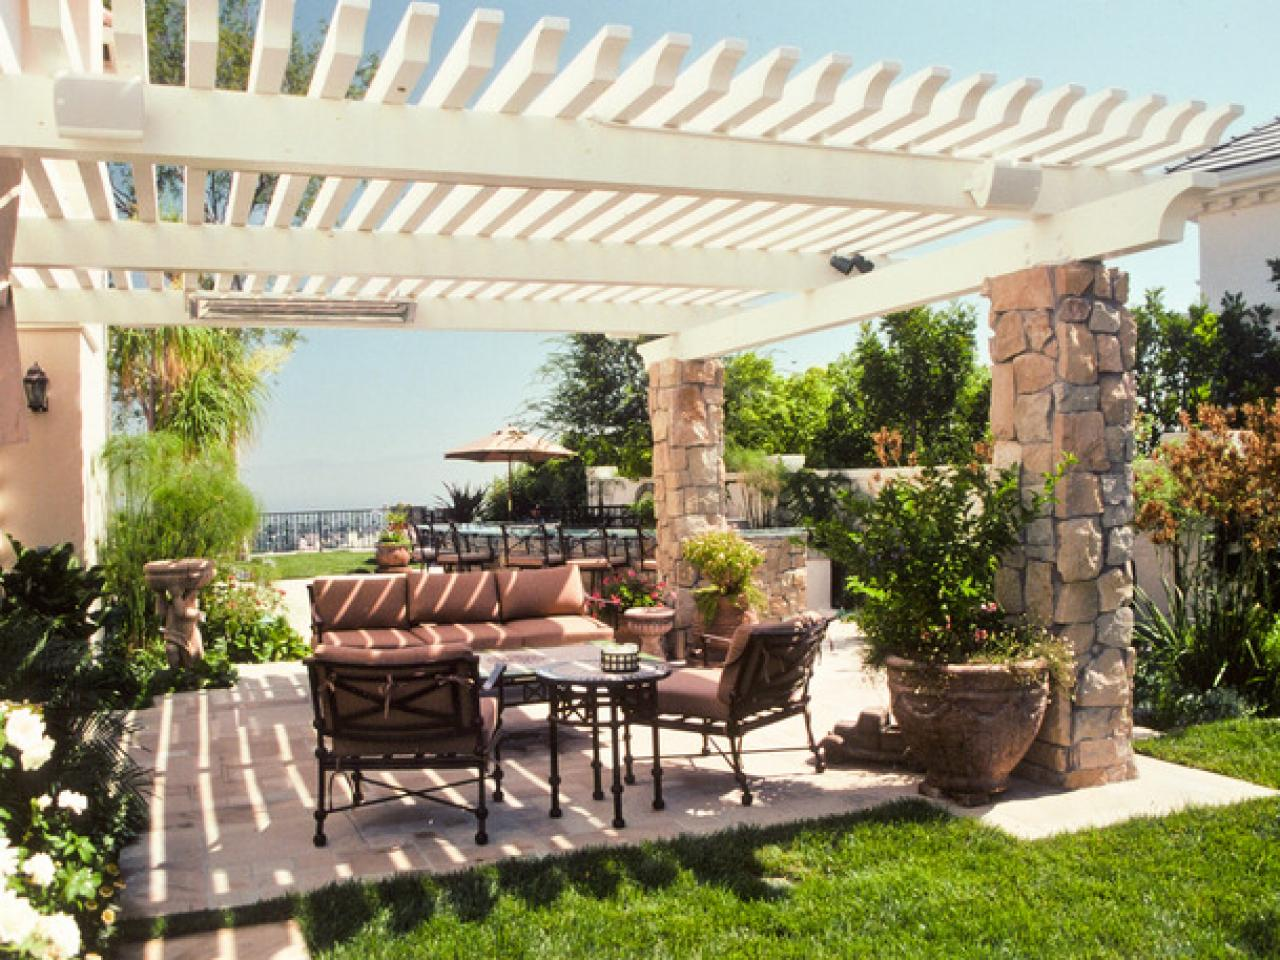 Patio enclosures hgtv Outdoor living areas images